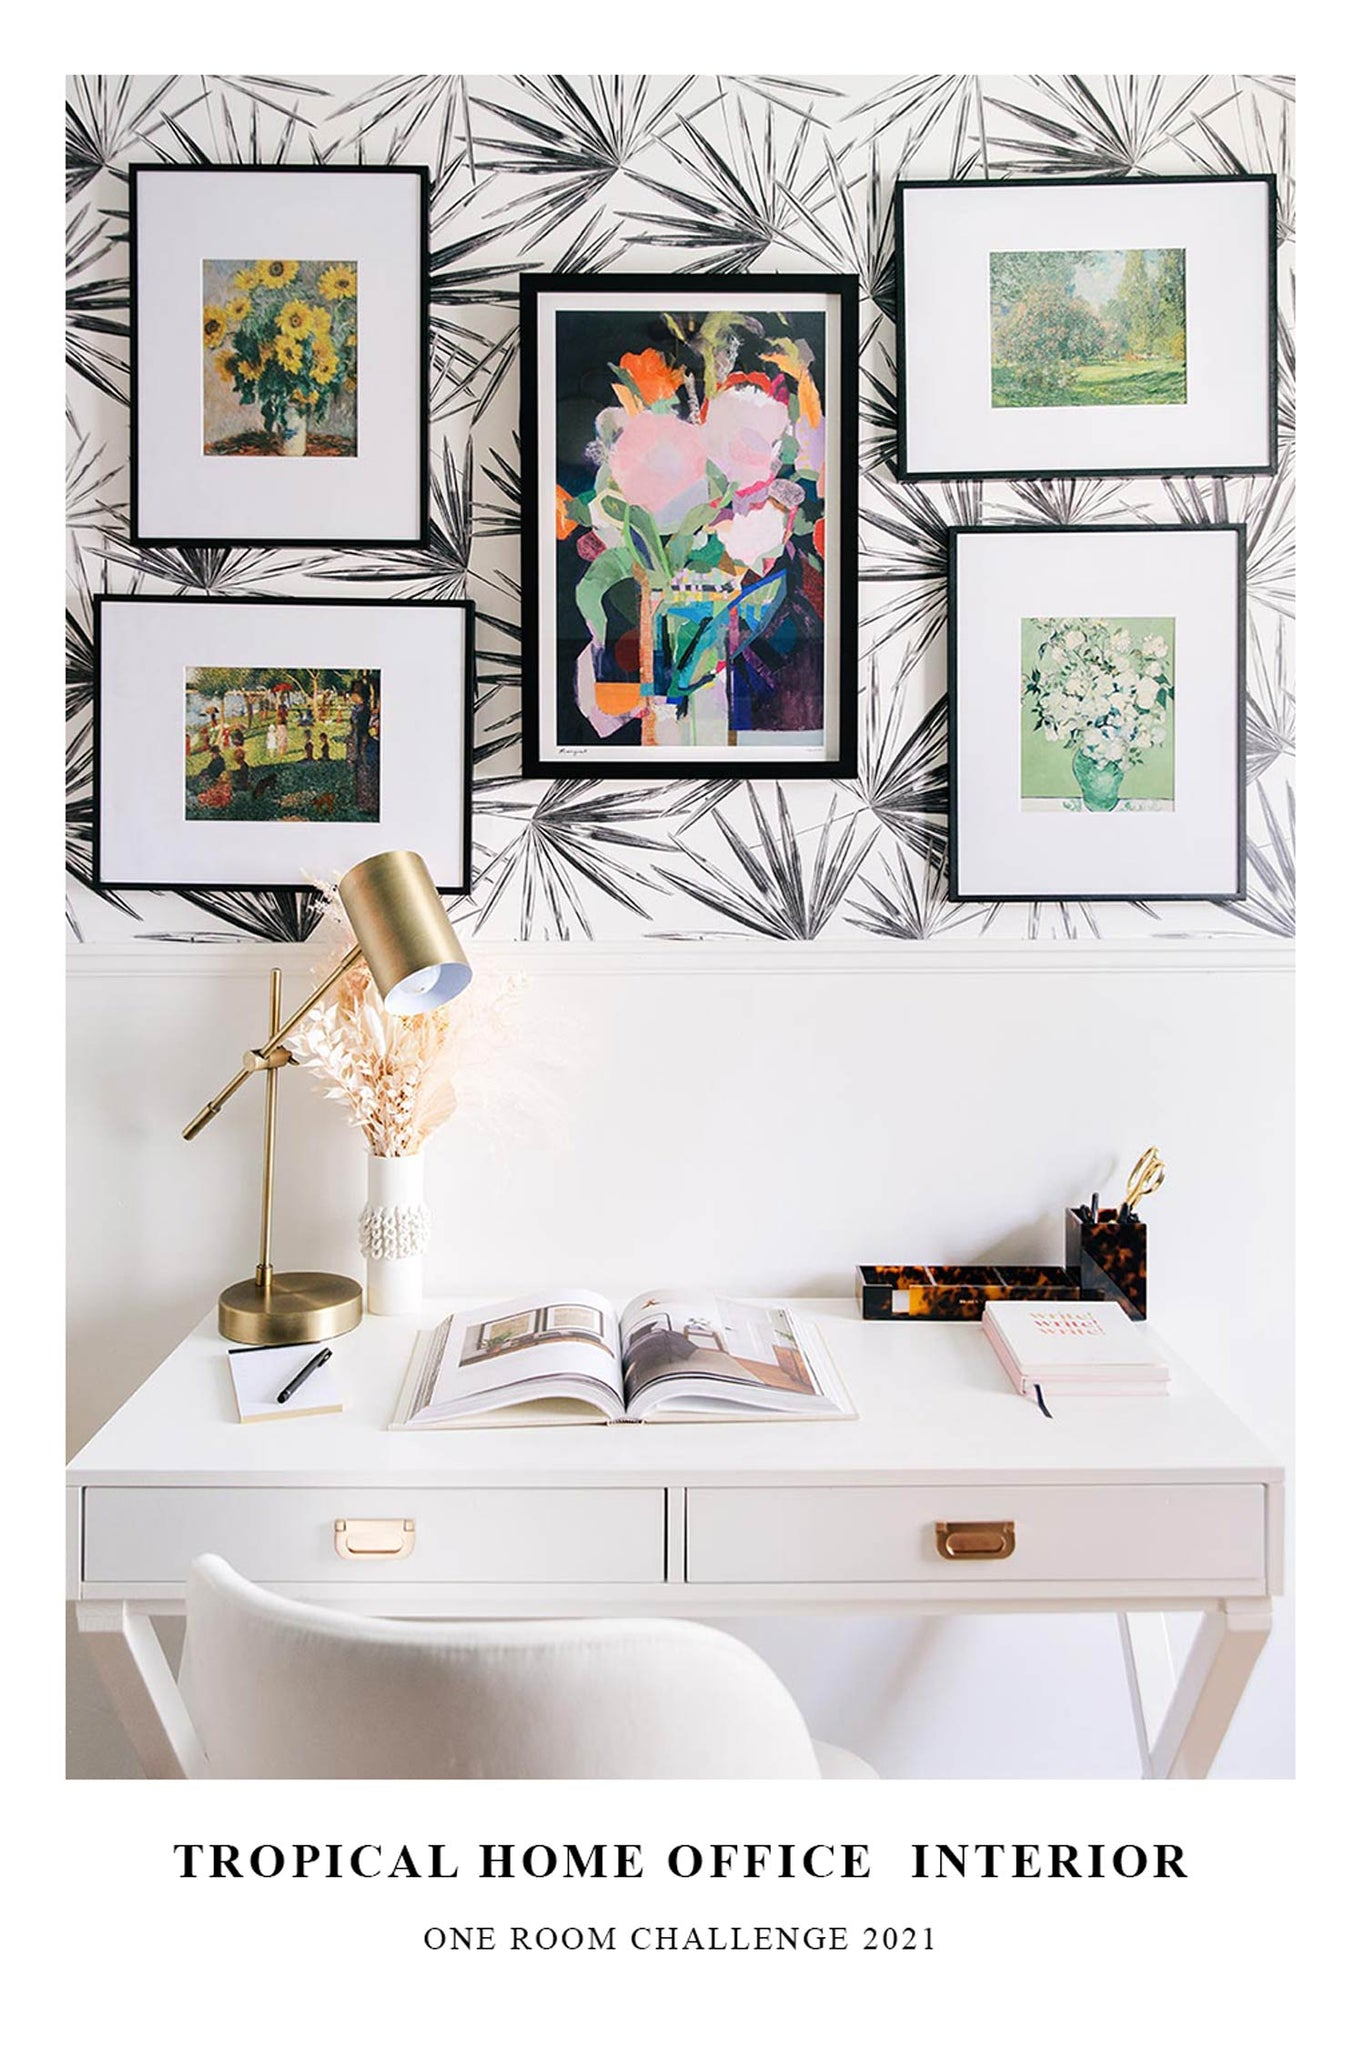 Modern tropical home office interior design, one room challenge 2021